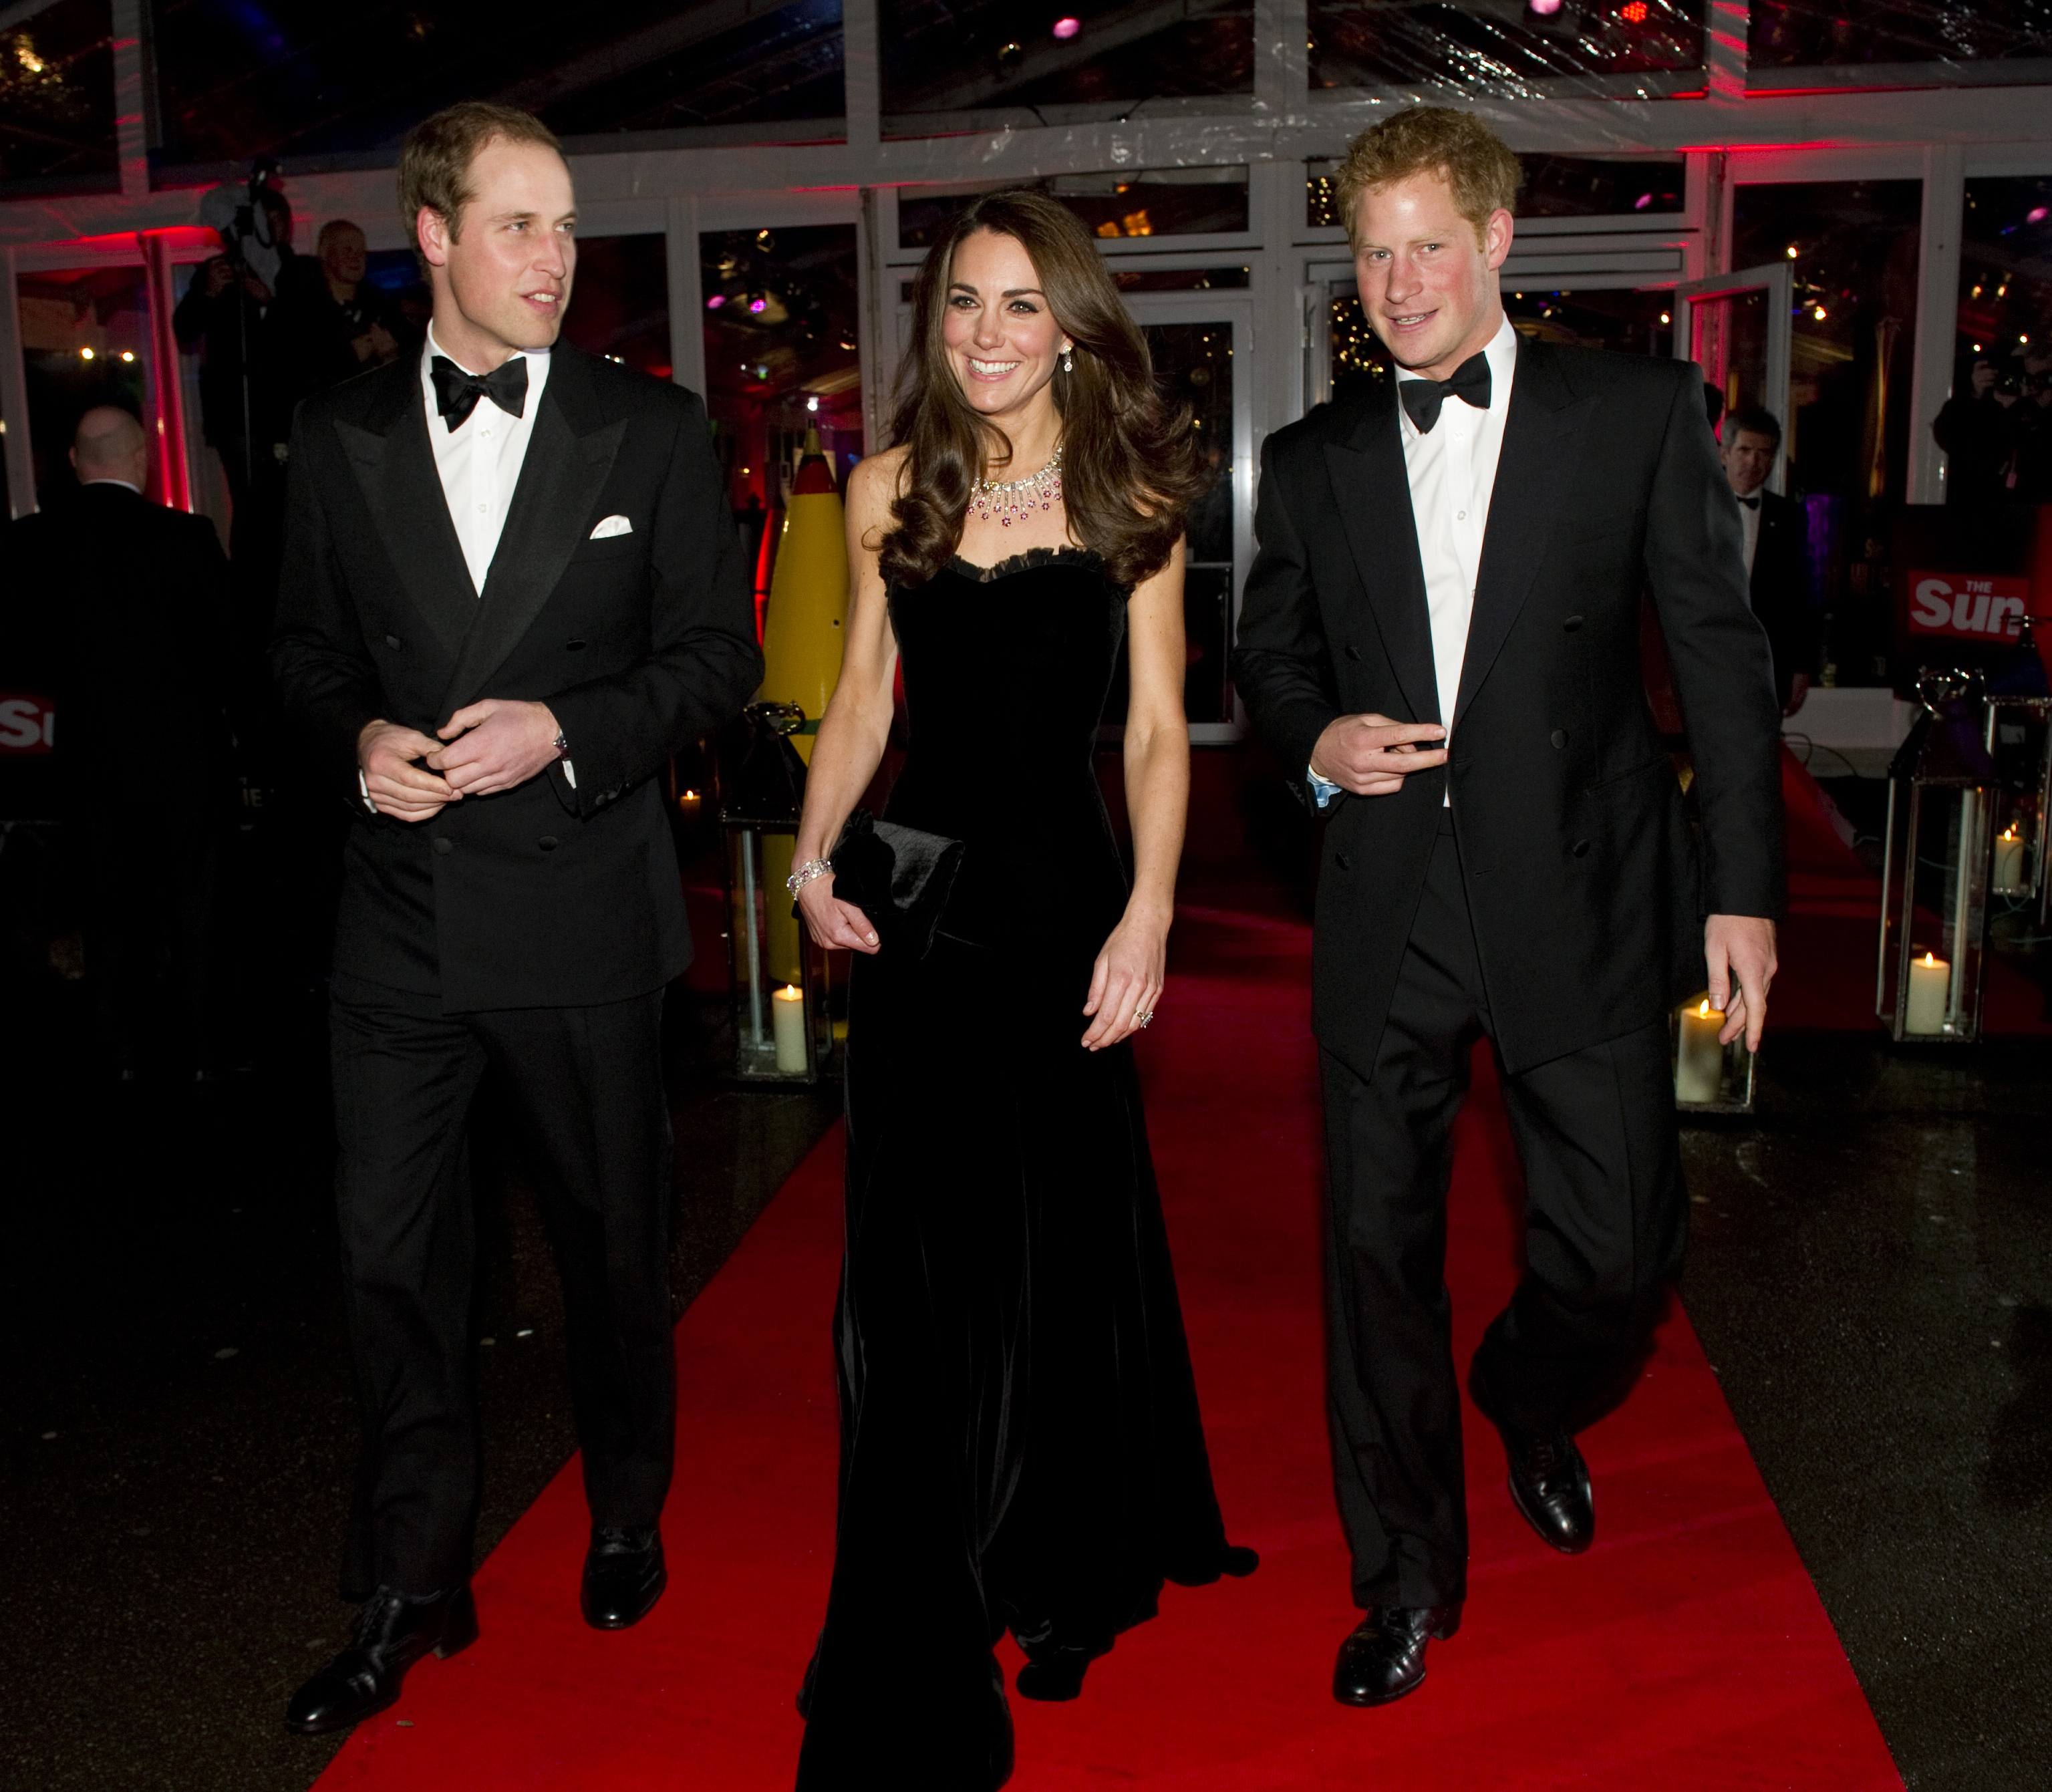 <strong>Her Favorite Designer</strong>                                   The Duchess attended the Sun Military Awards on Dec. 20, 2011 in a strapless, black velvet Alexander McQueen gown. She has stepped out several times in designs by the label, most famously choosing Sarah Burton to create her elaborate wedding gown.